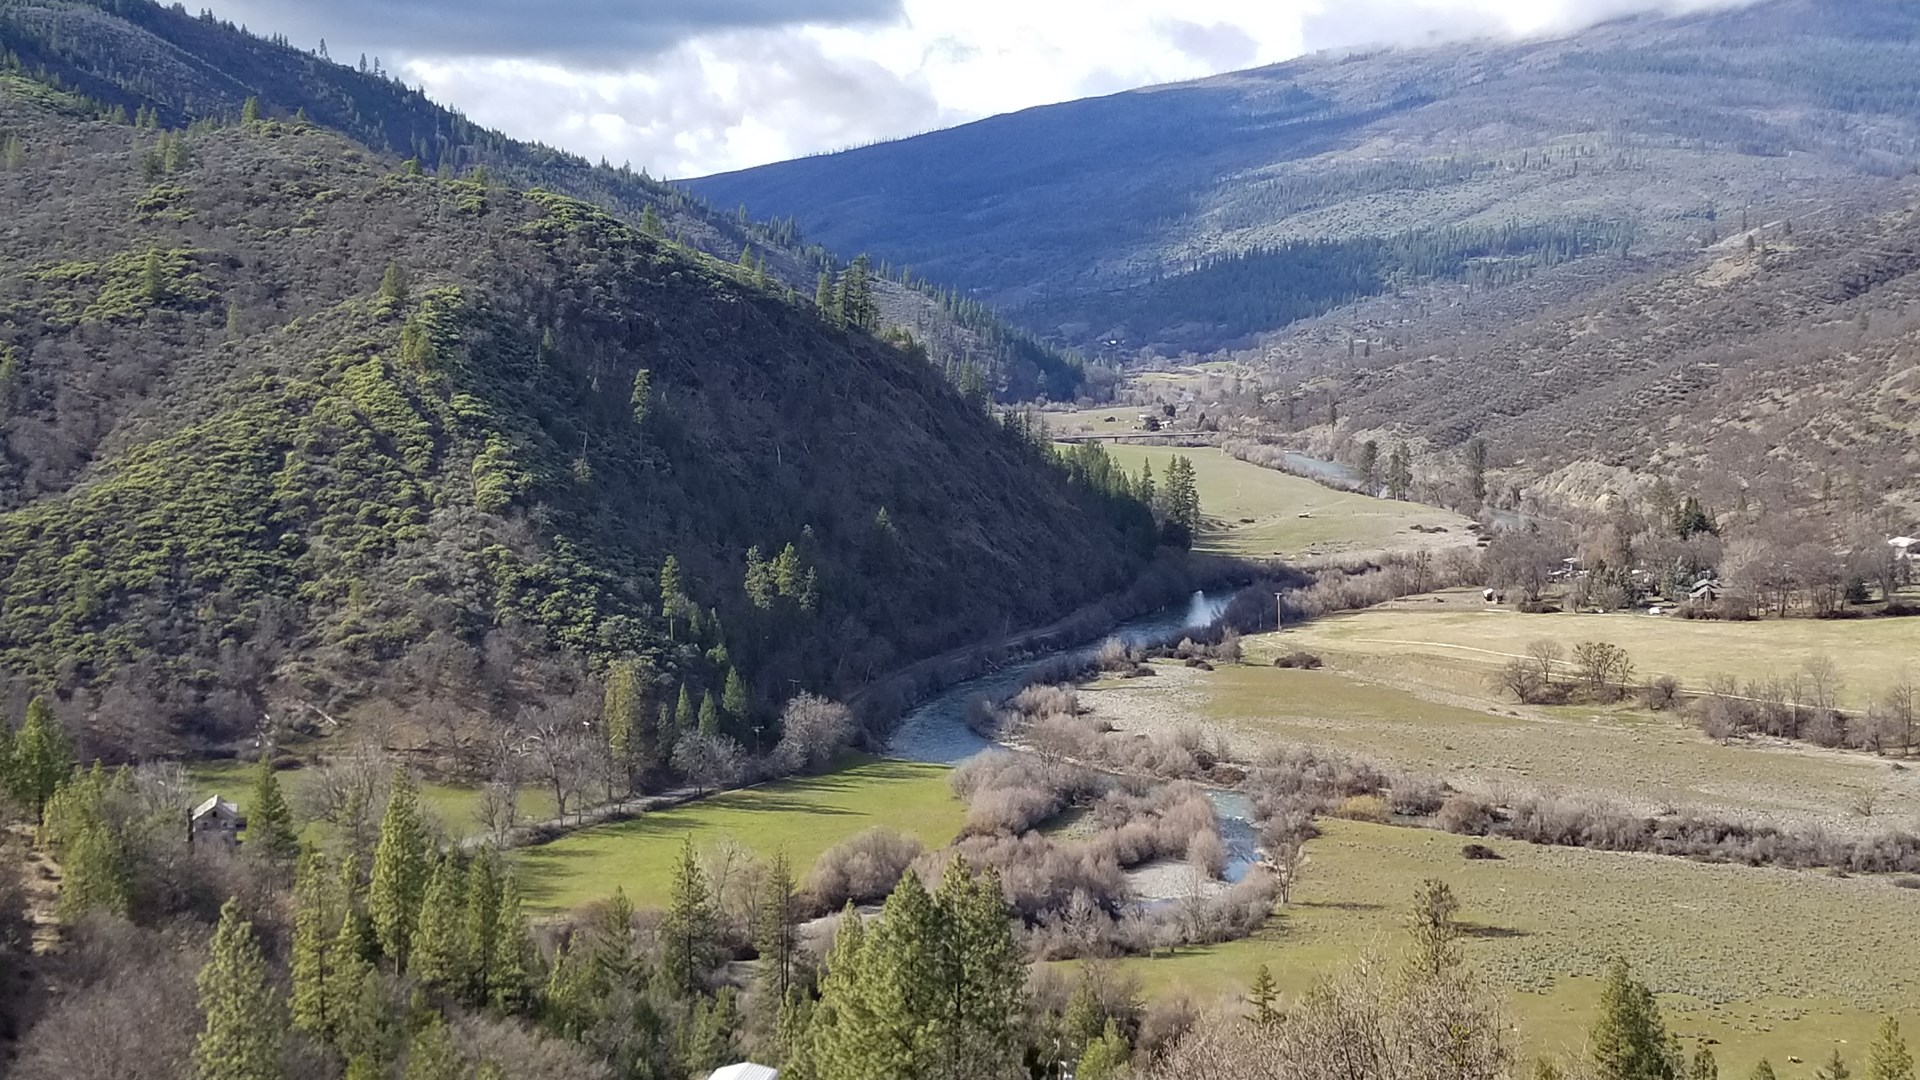 Northern California Klamath River Land for Sale - Fishing!